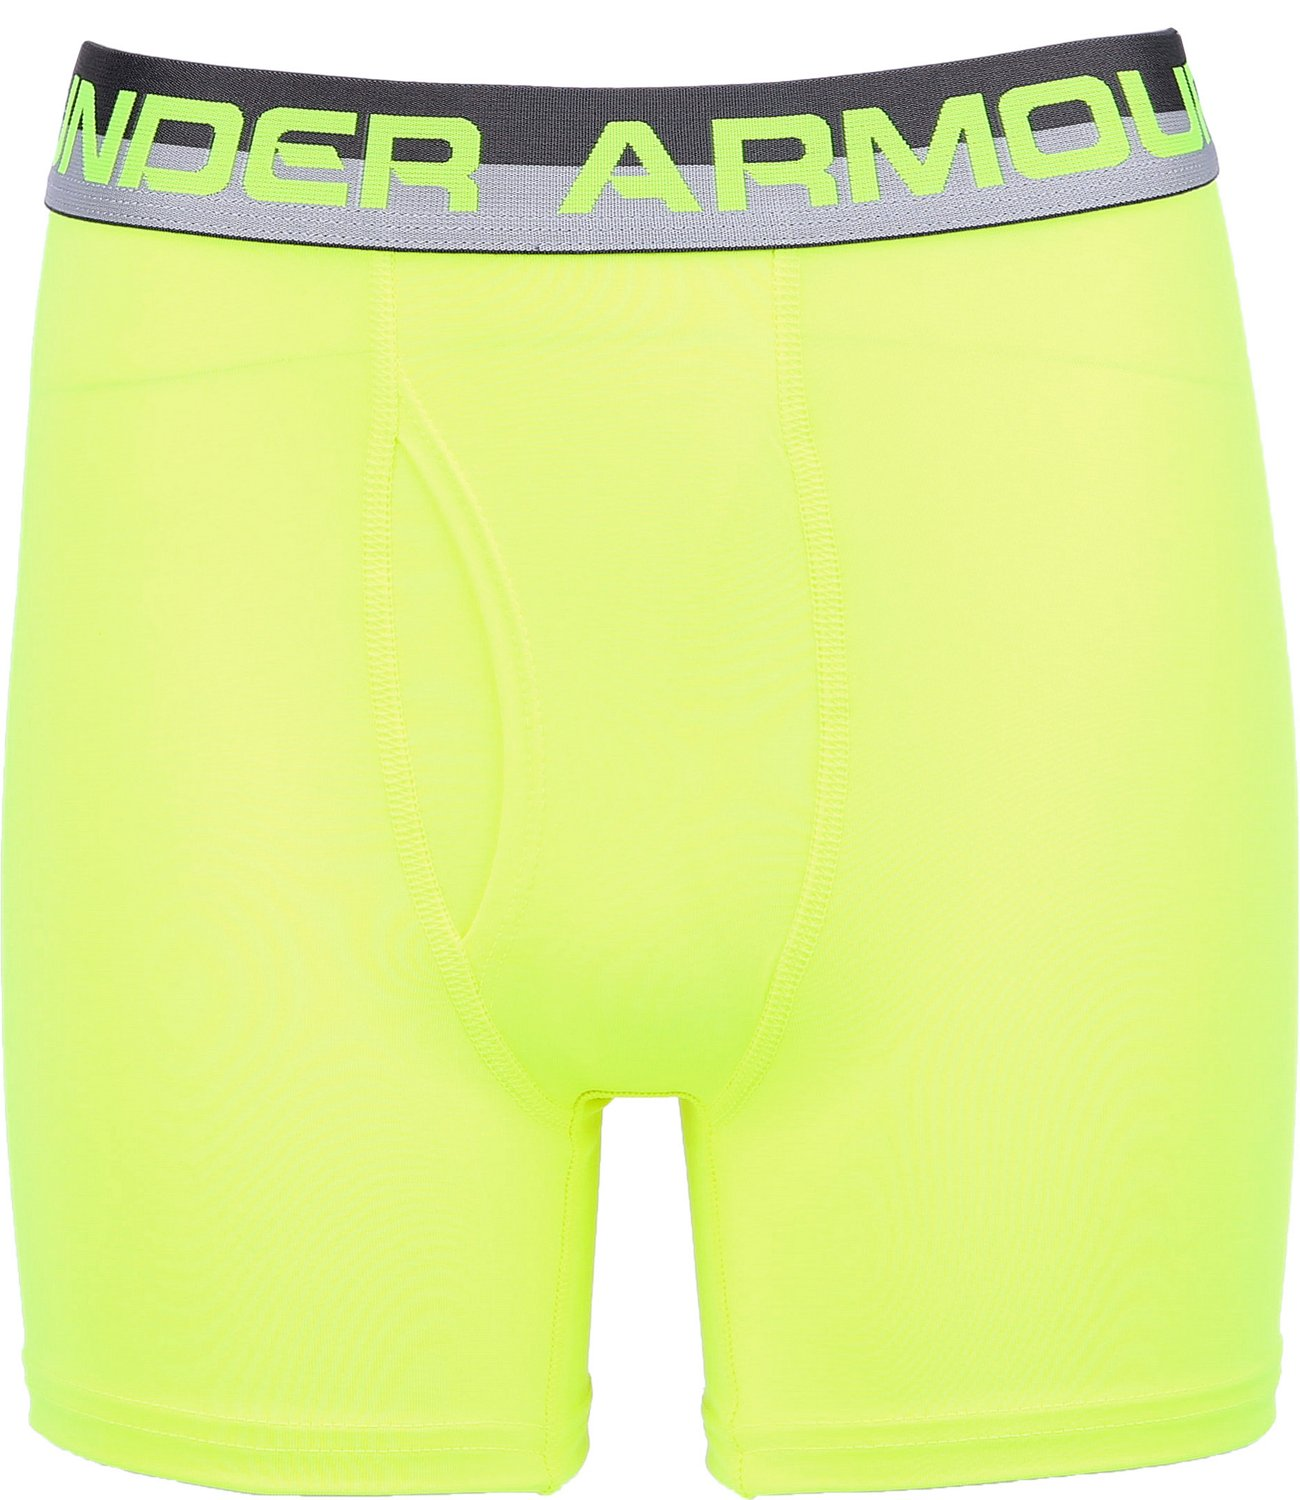 Under Armour Boys' Performance Boxer Briefs 2-Pack - view number 6